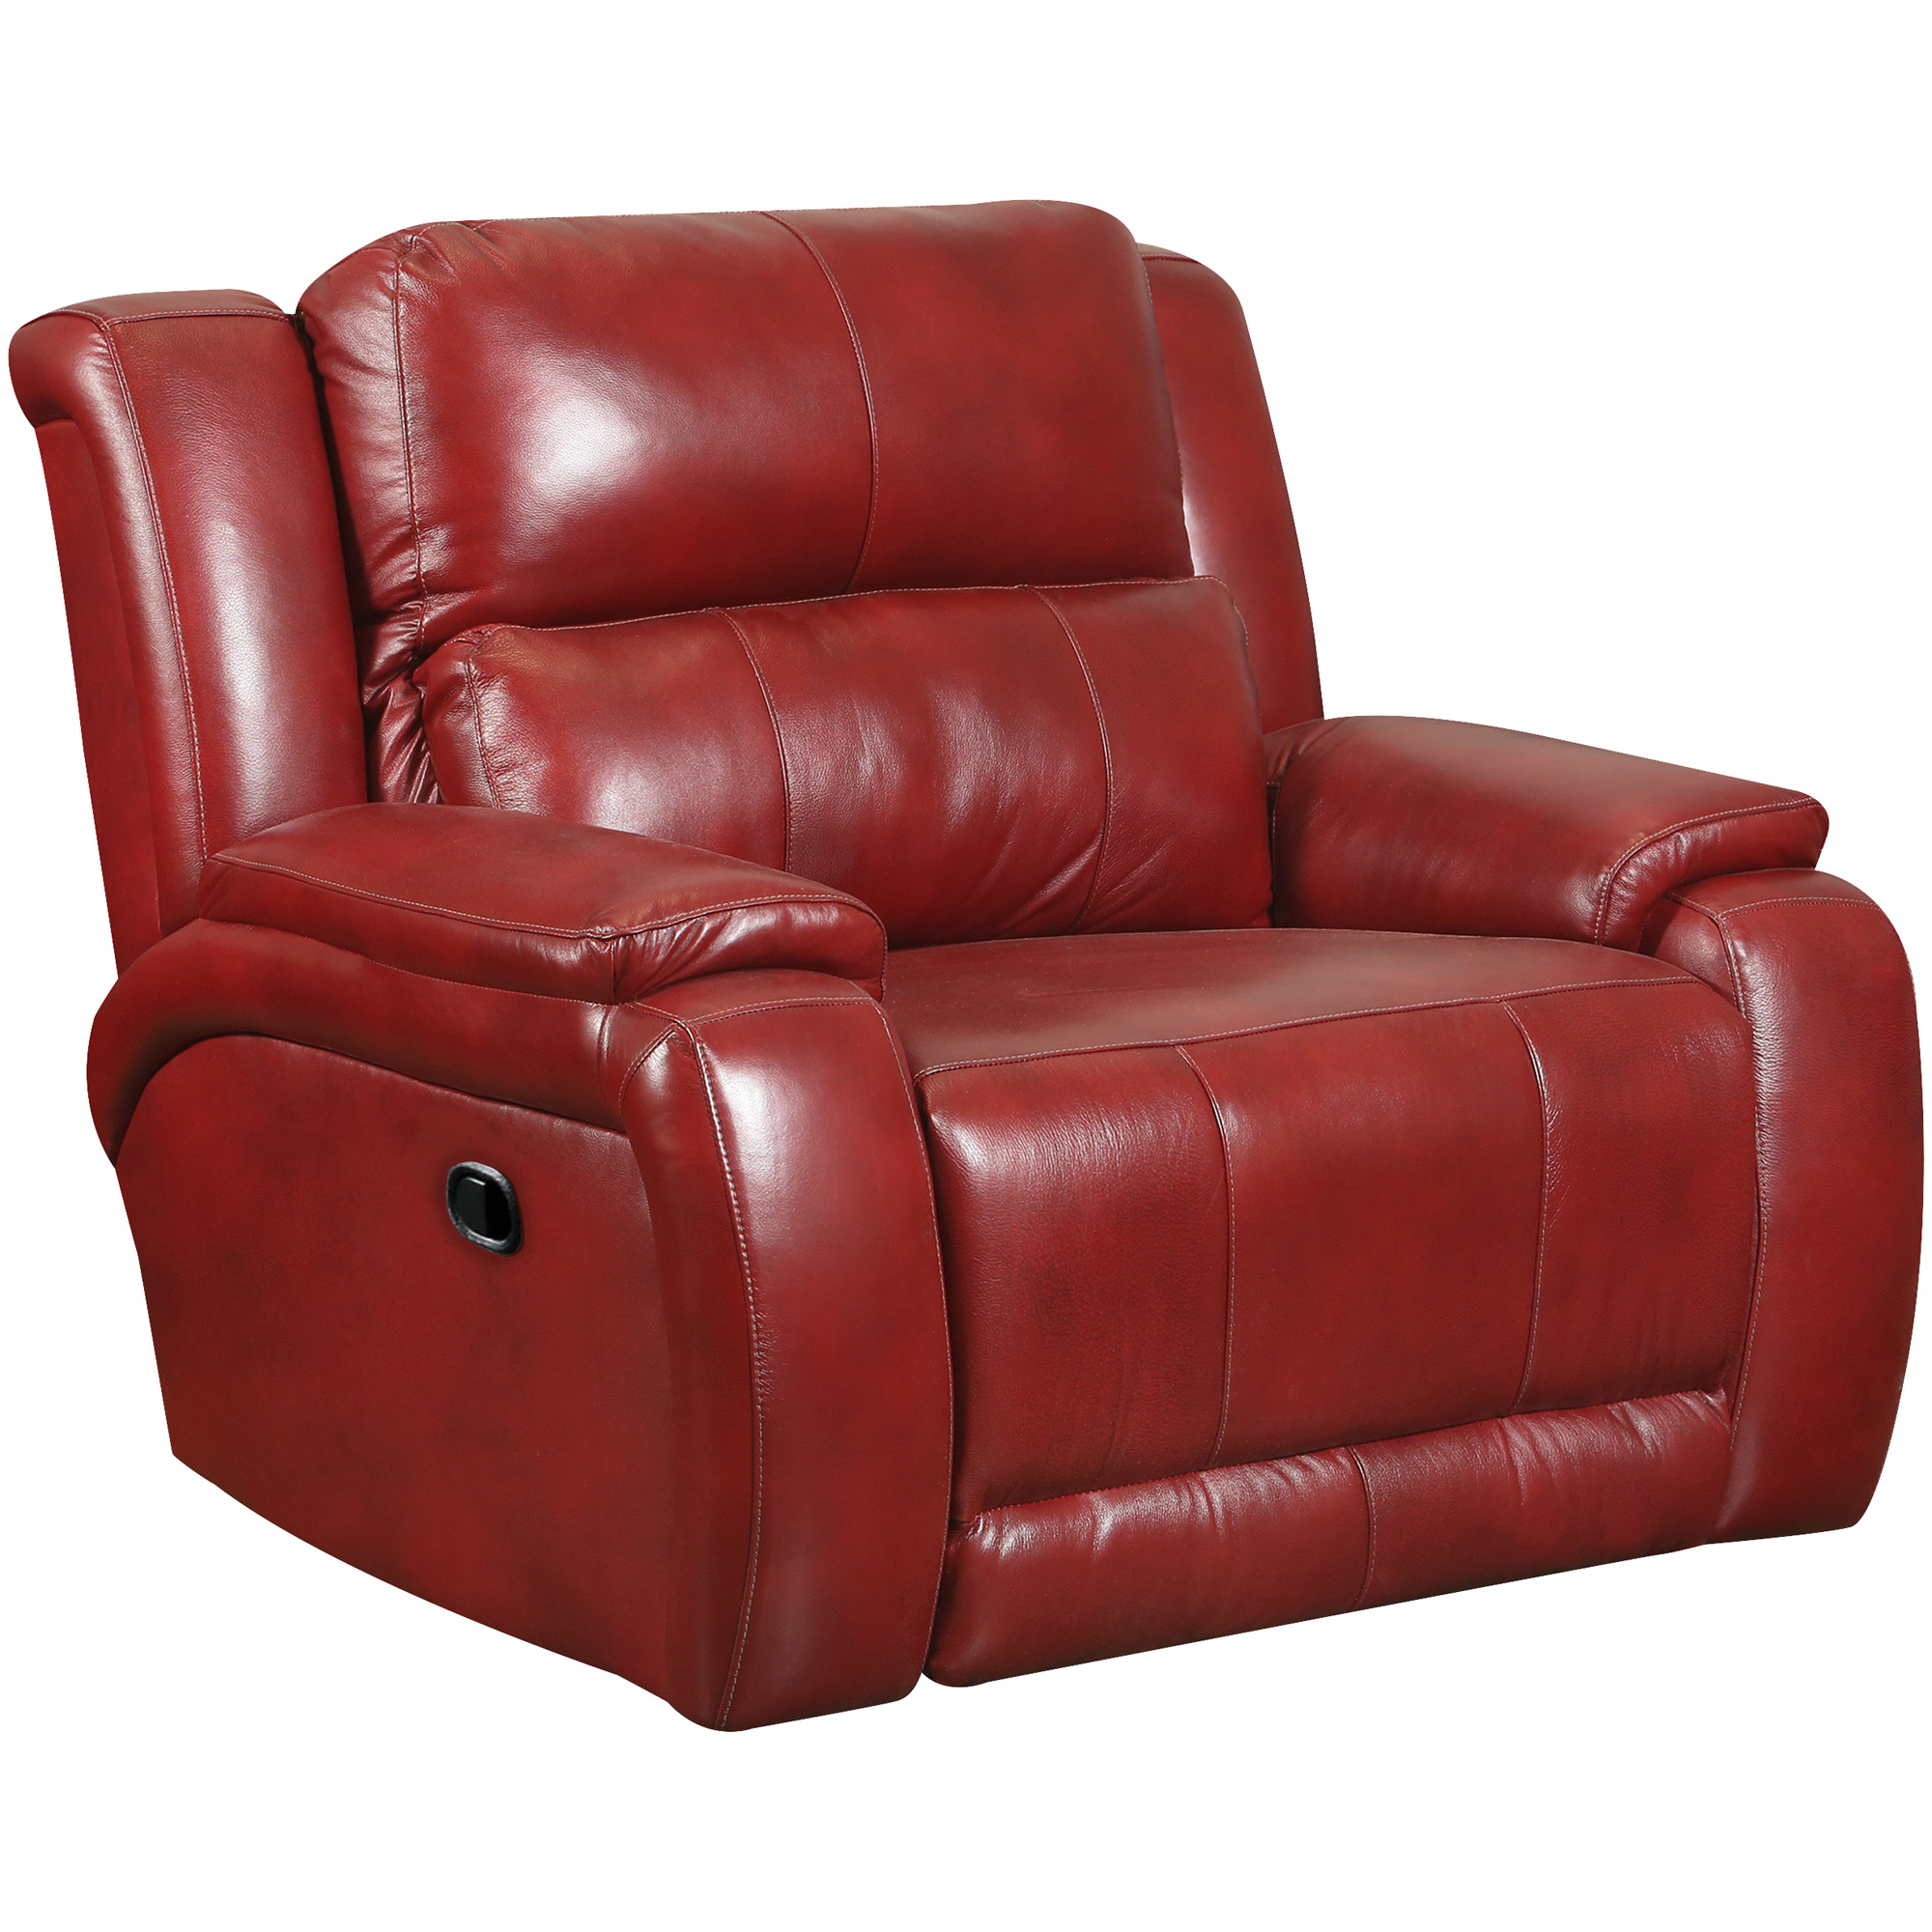 Southern Motion | Marquis Leather Marsala Recliner Chair